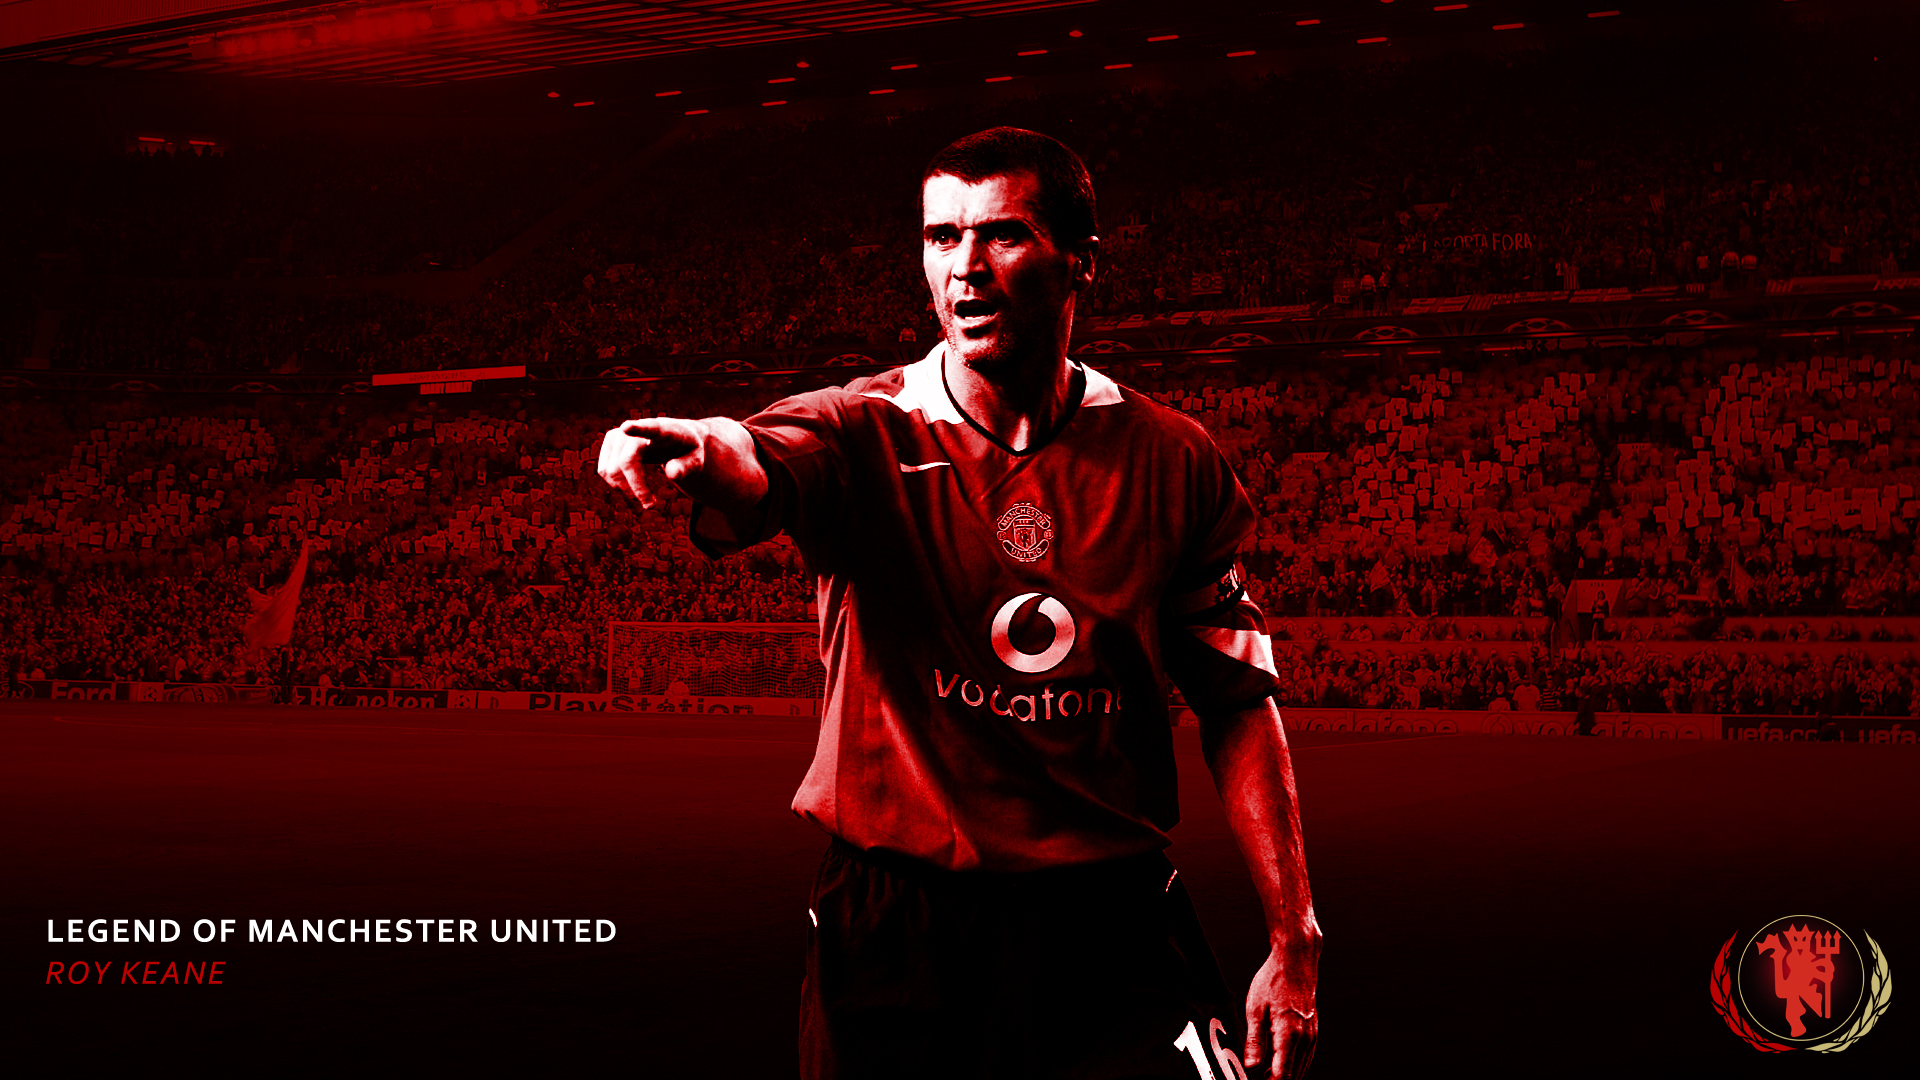 Manchester-United-Legend-Roy-Keane-Wallpaper